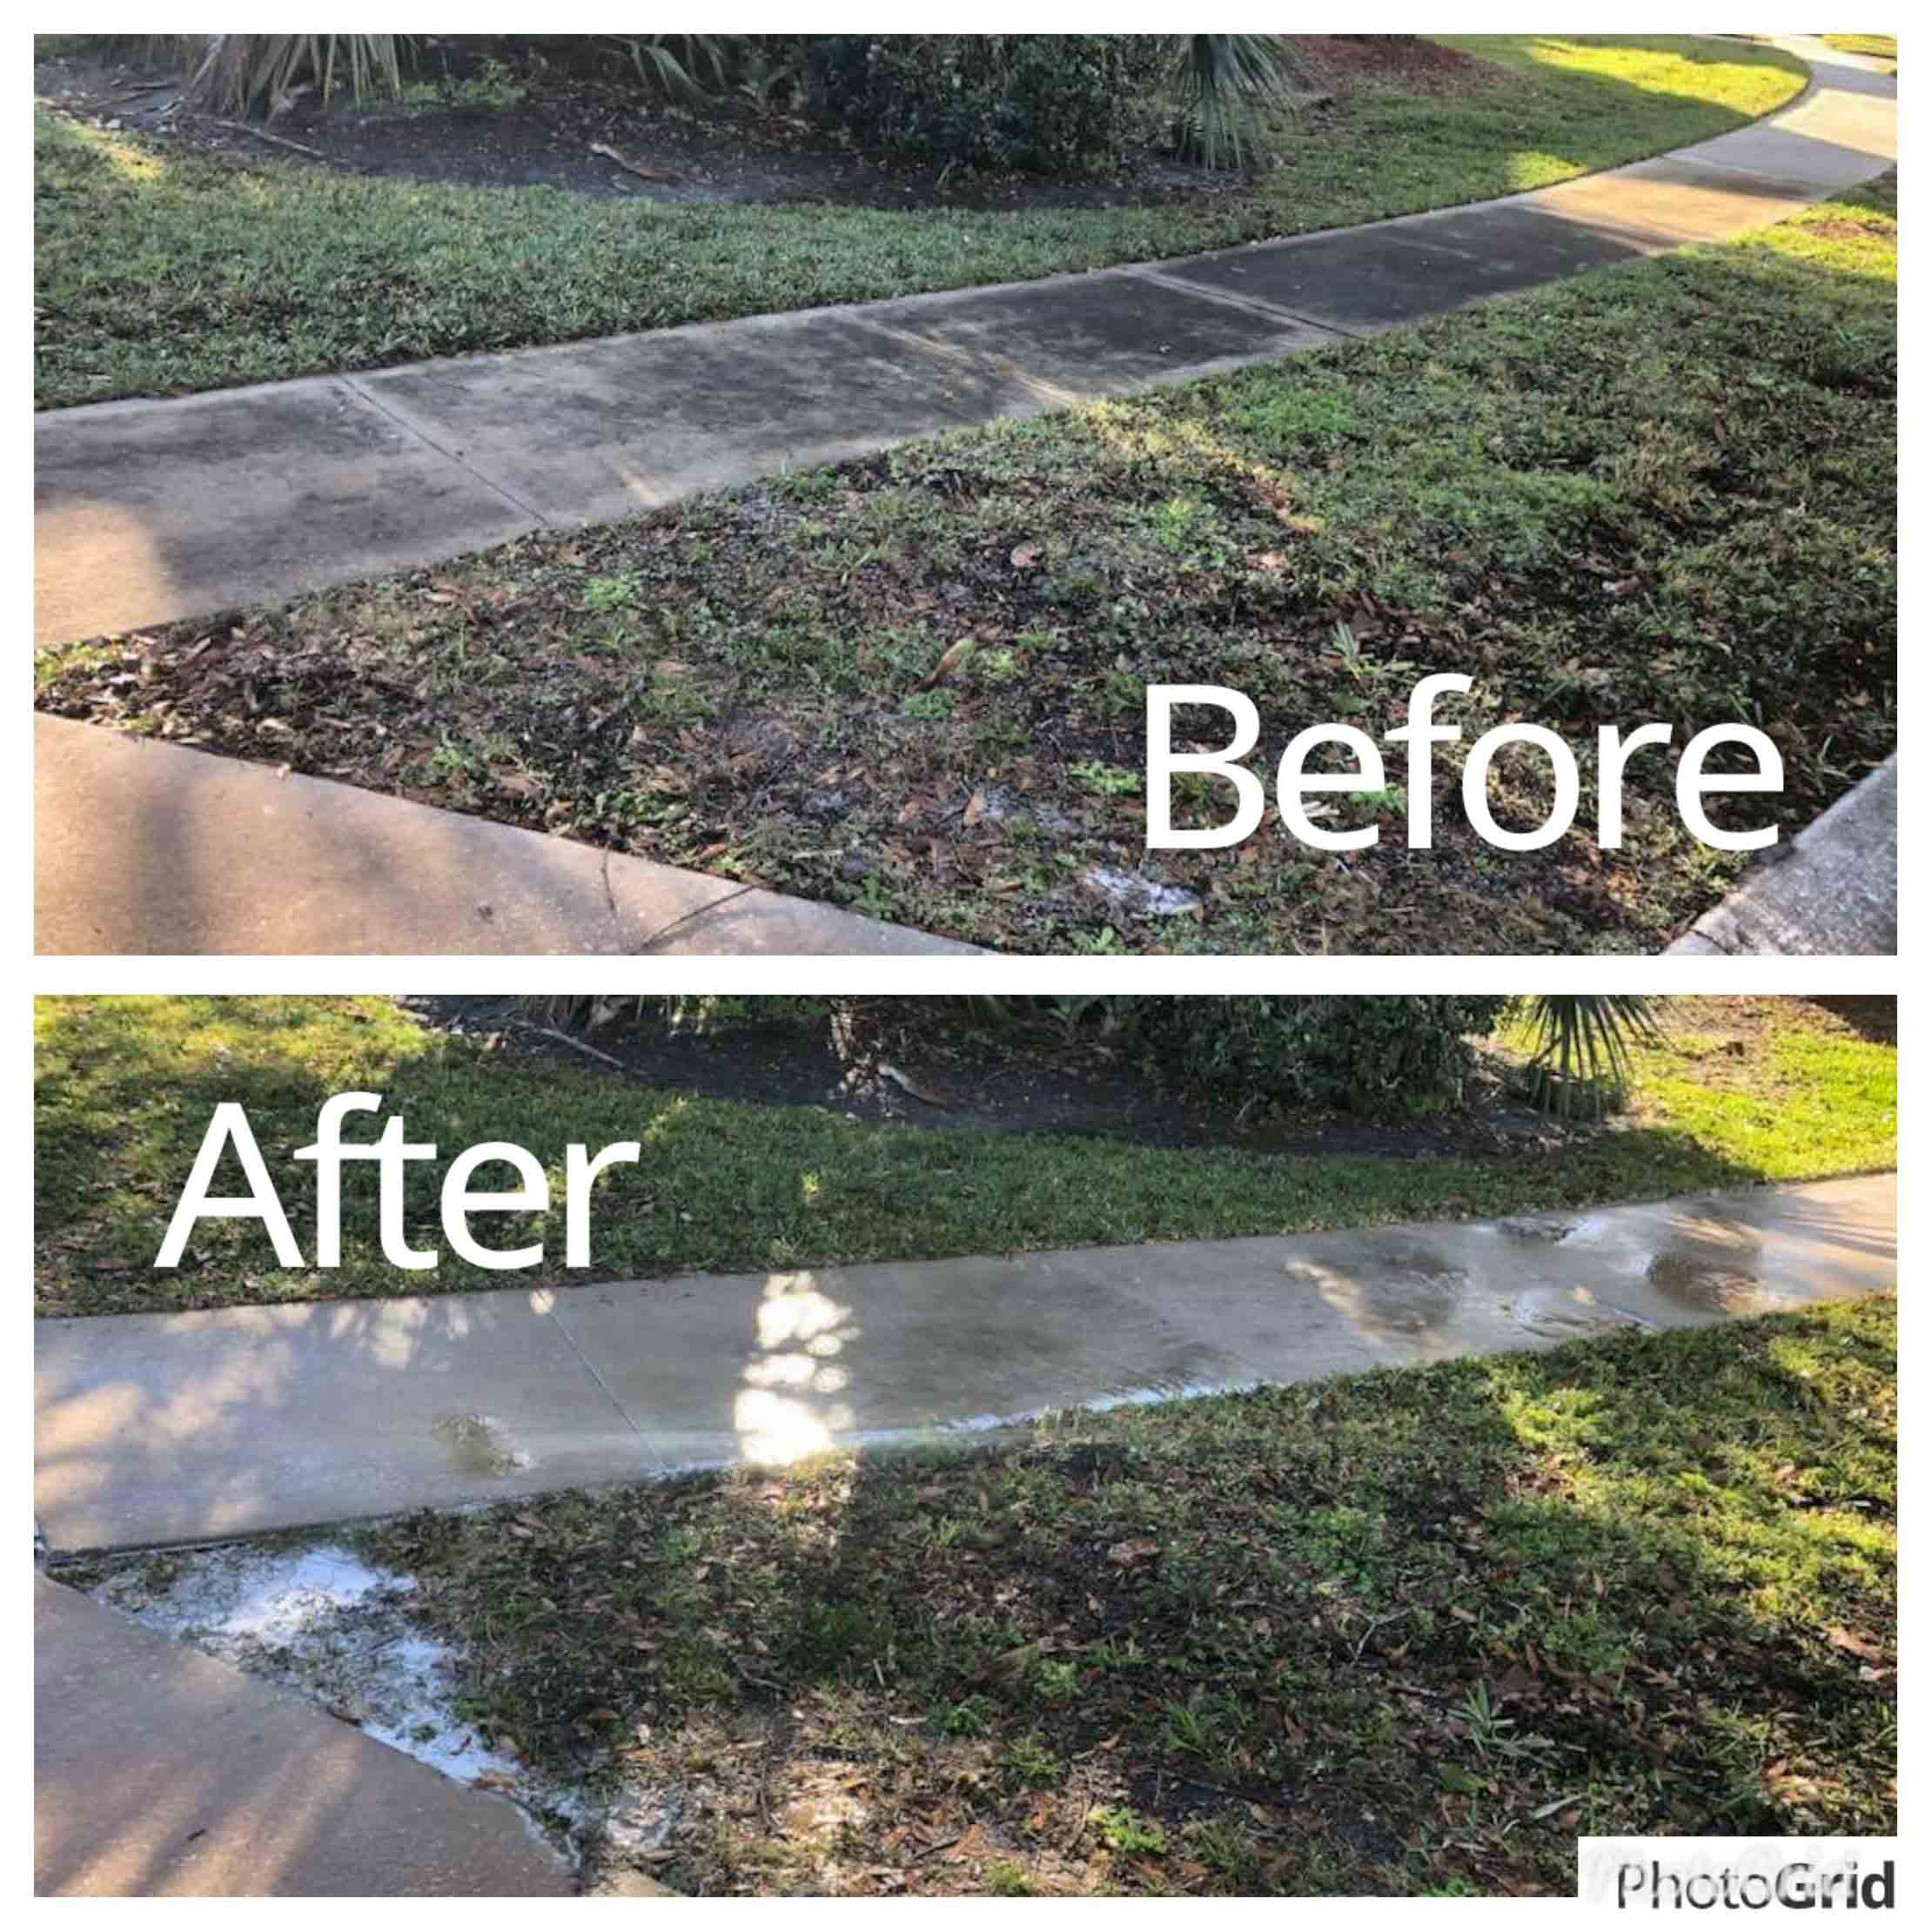 Roof Cleaning Service in Longwood, FL